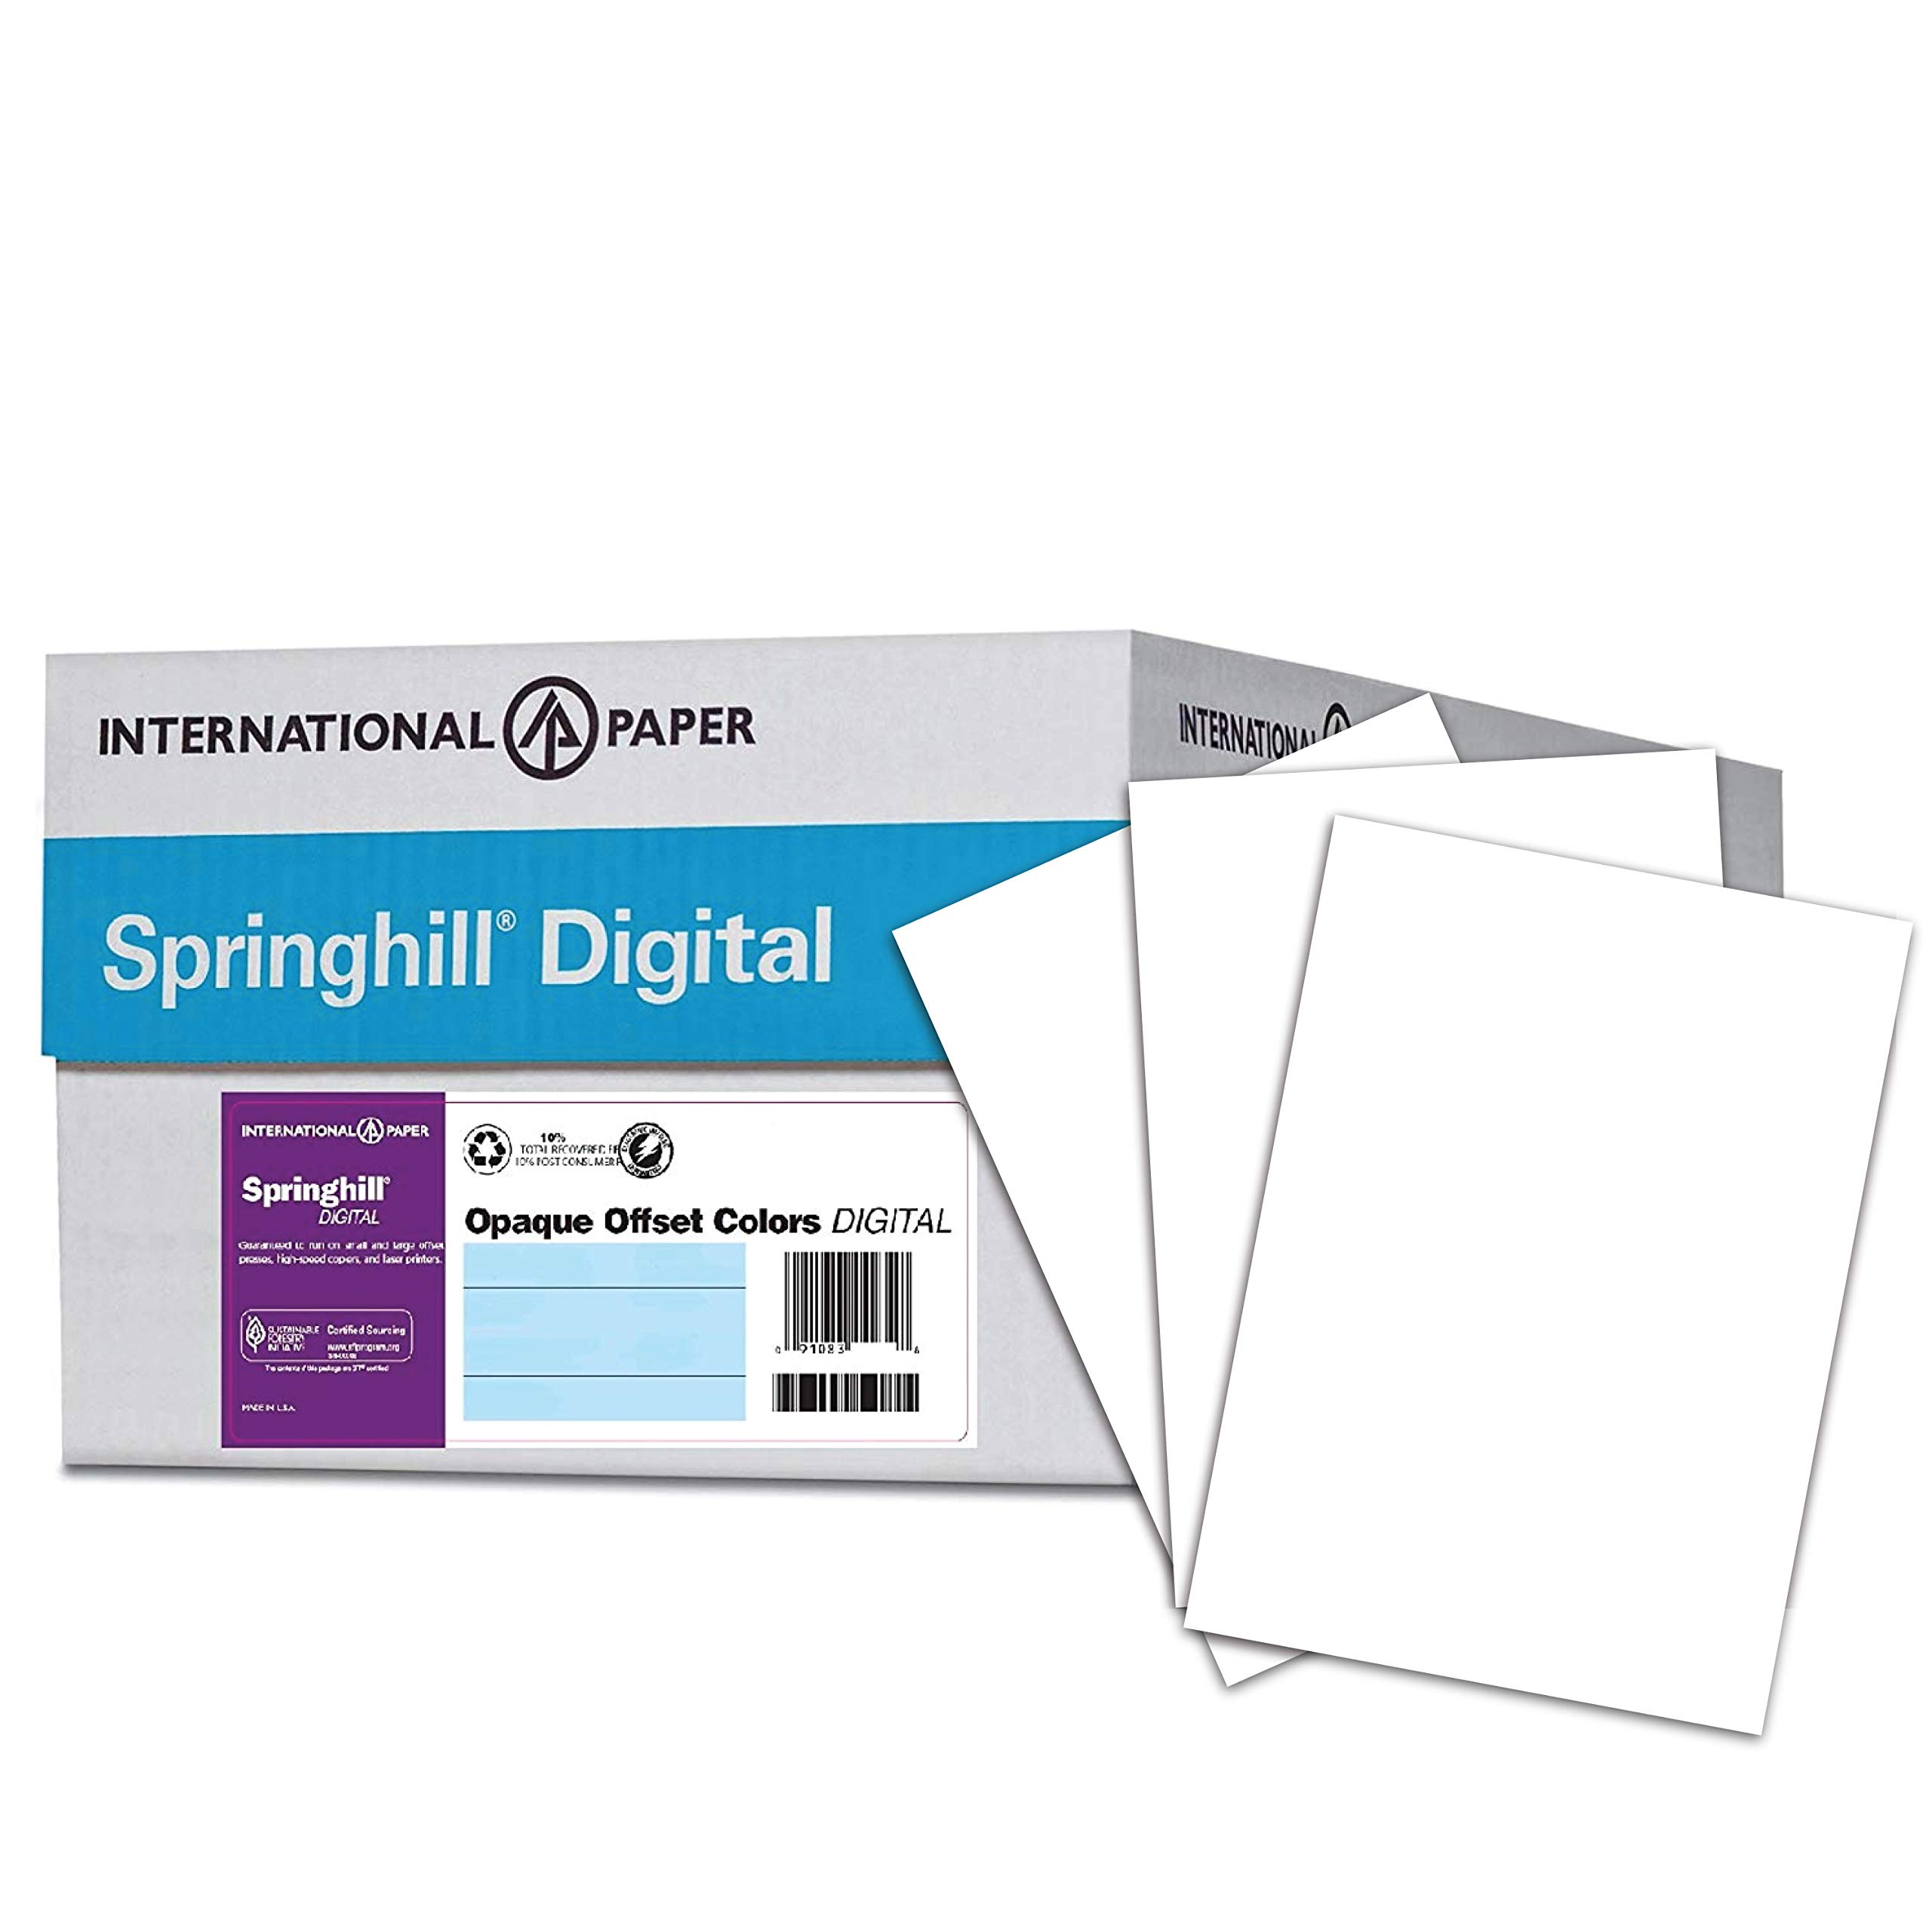 Springhill Cardstock Paper, White Paper, 90lb, 163gsm, 8.5 x 14, 92 Bright, 8 Reams / 2,500 Sheets - Index Card Stock, Thick Paper (015114C)